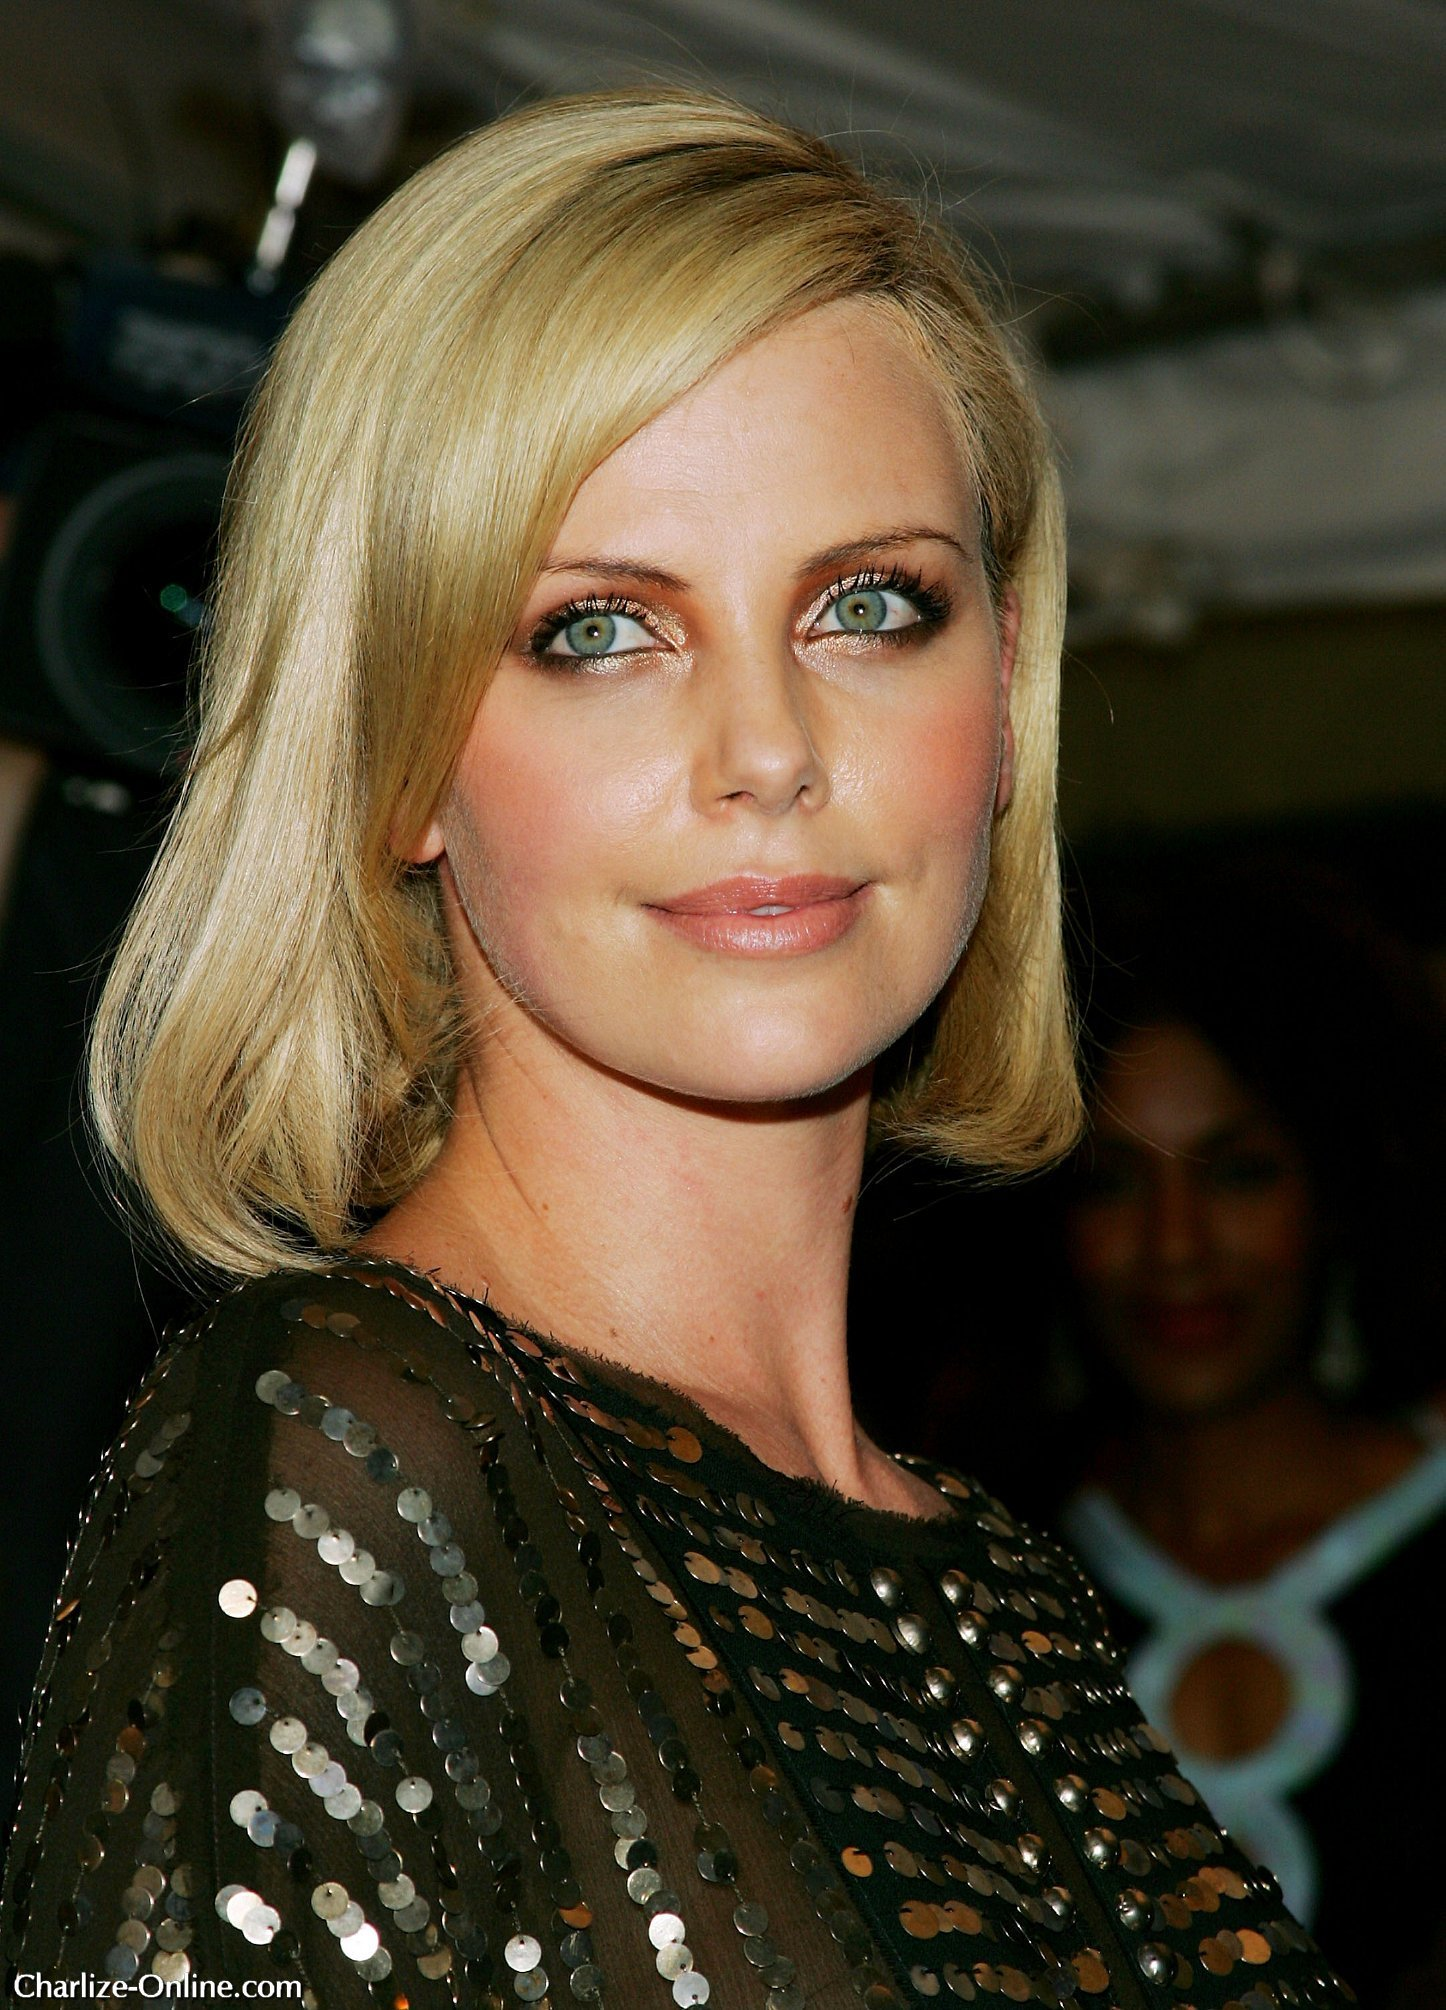 Charlize Theron Celebrity HD Wallpaper